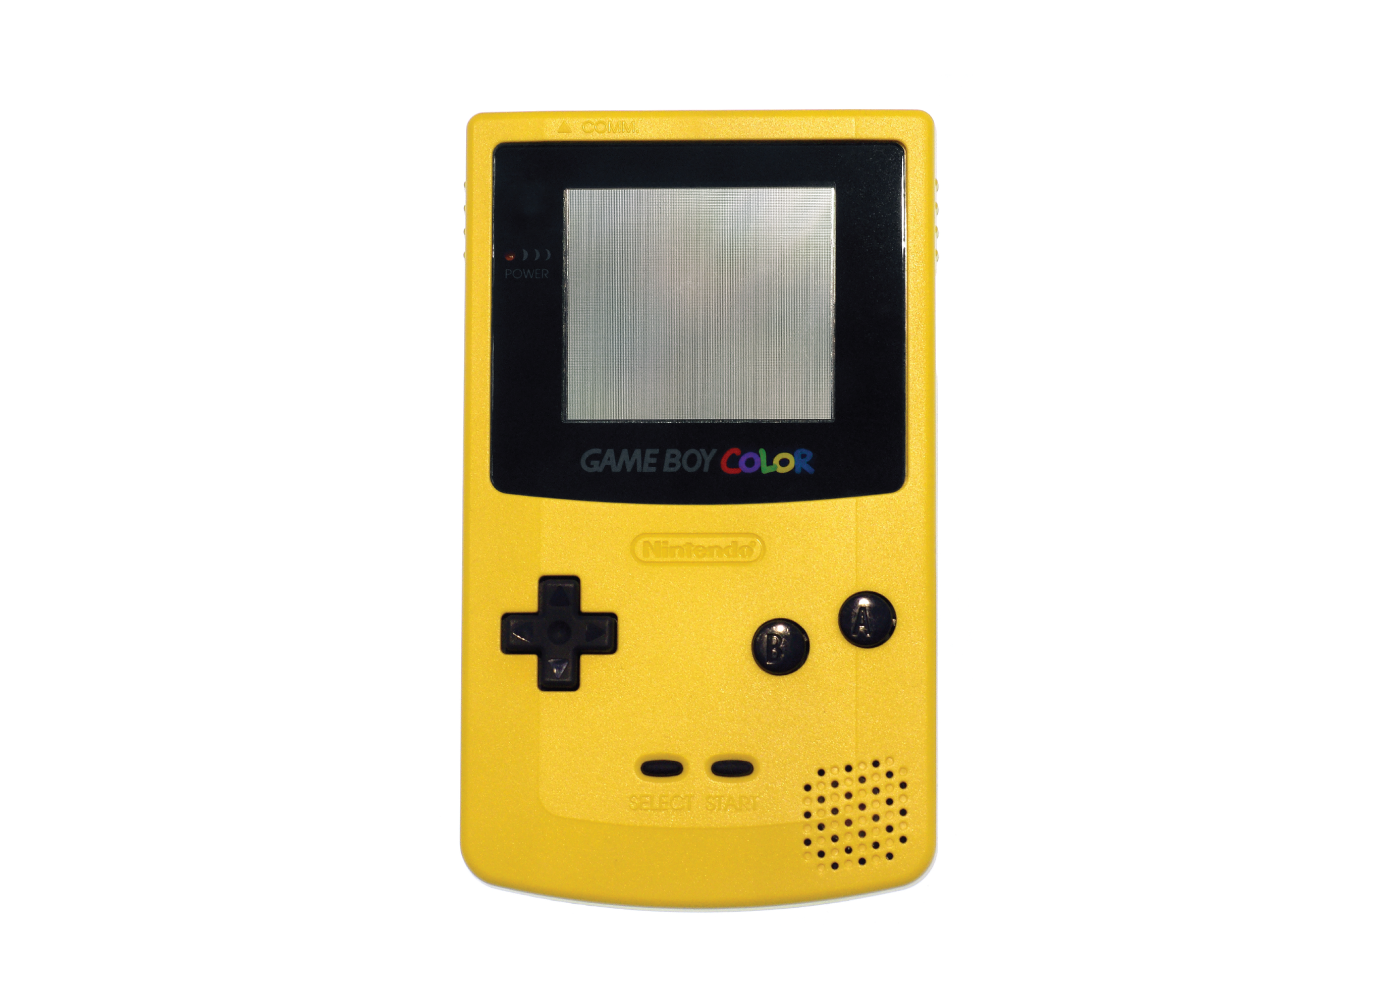 Game boy color list - Dfb18bda